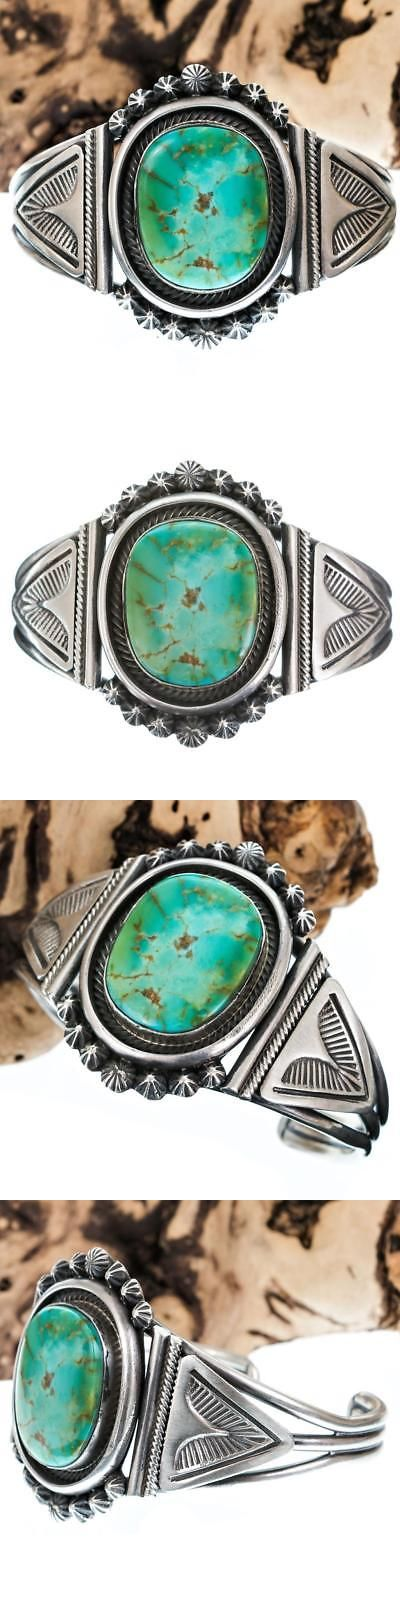 navajo etsy i jewelry bracelet pin vintage on navajodreams at pendant turquoise american shop